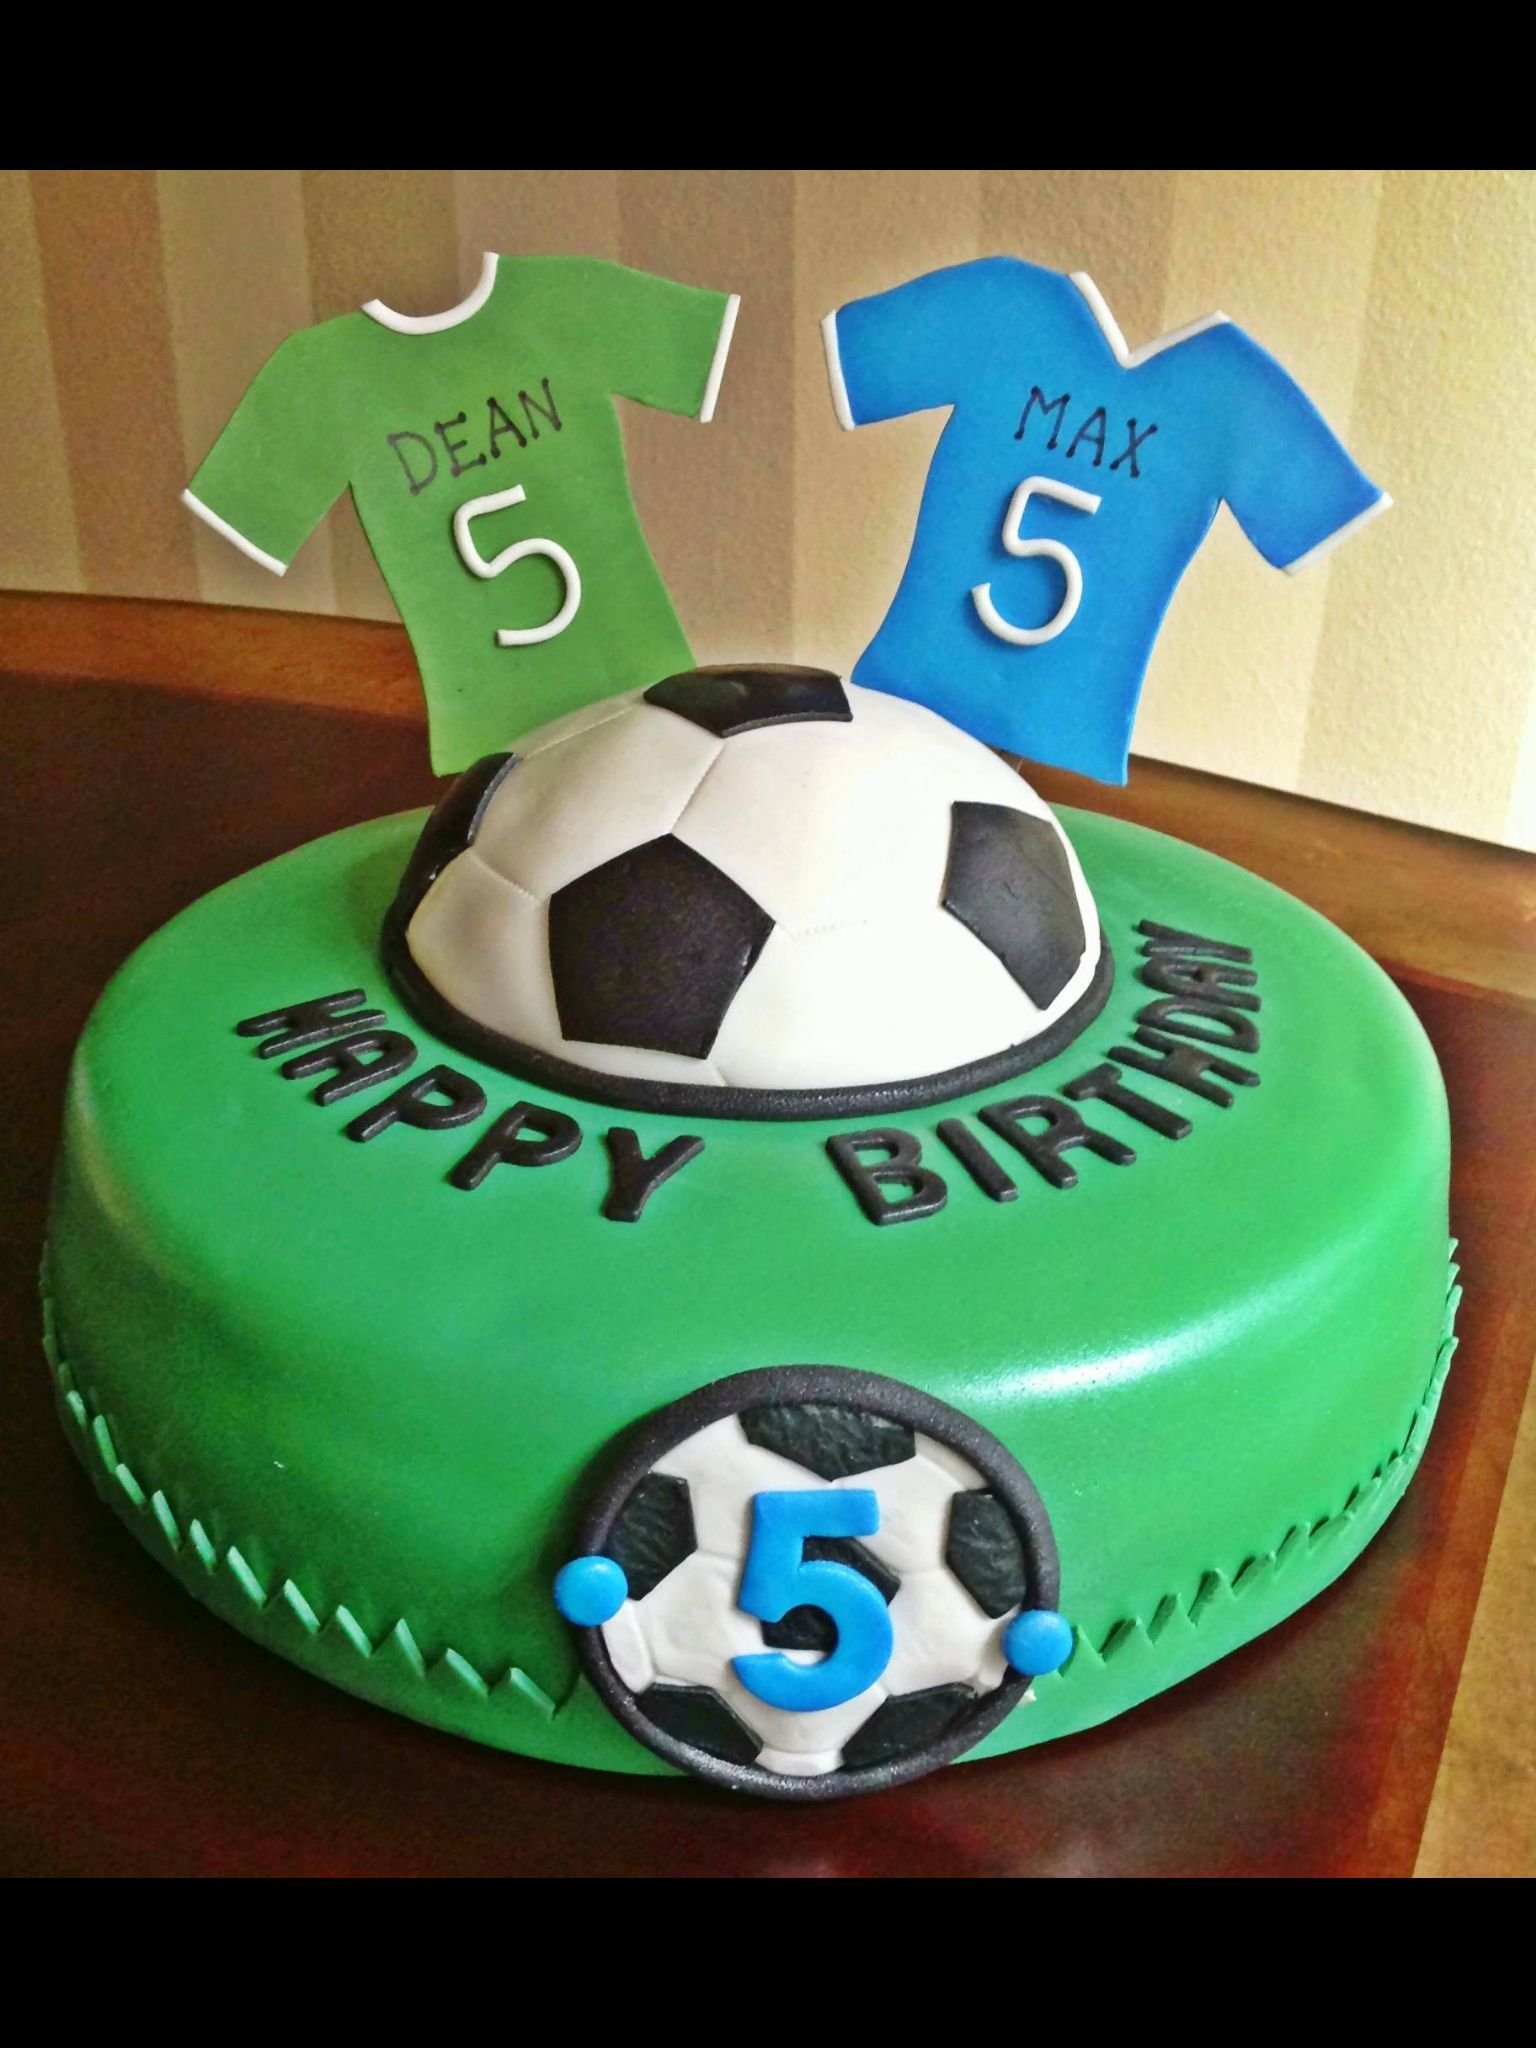 Too Sweeties Bake Shoppe Soccer birthday cake Too Sweeties